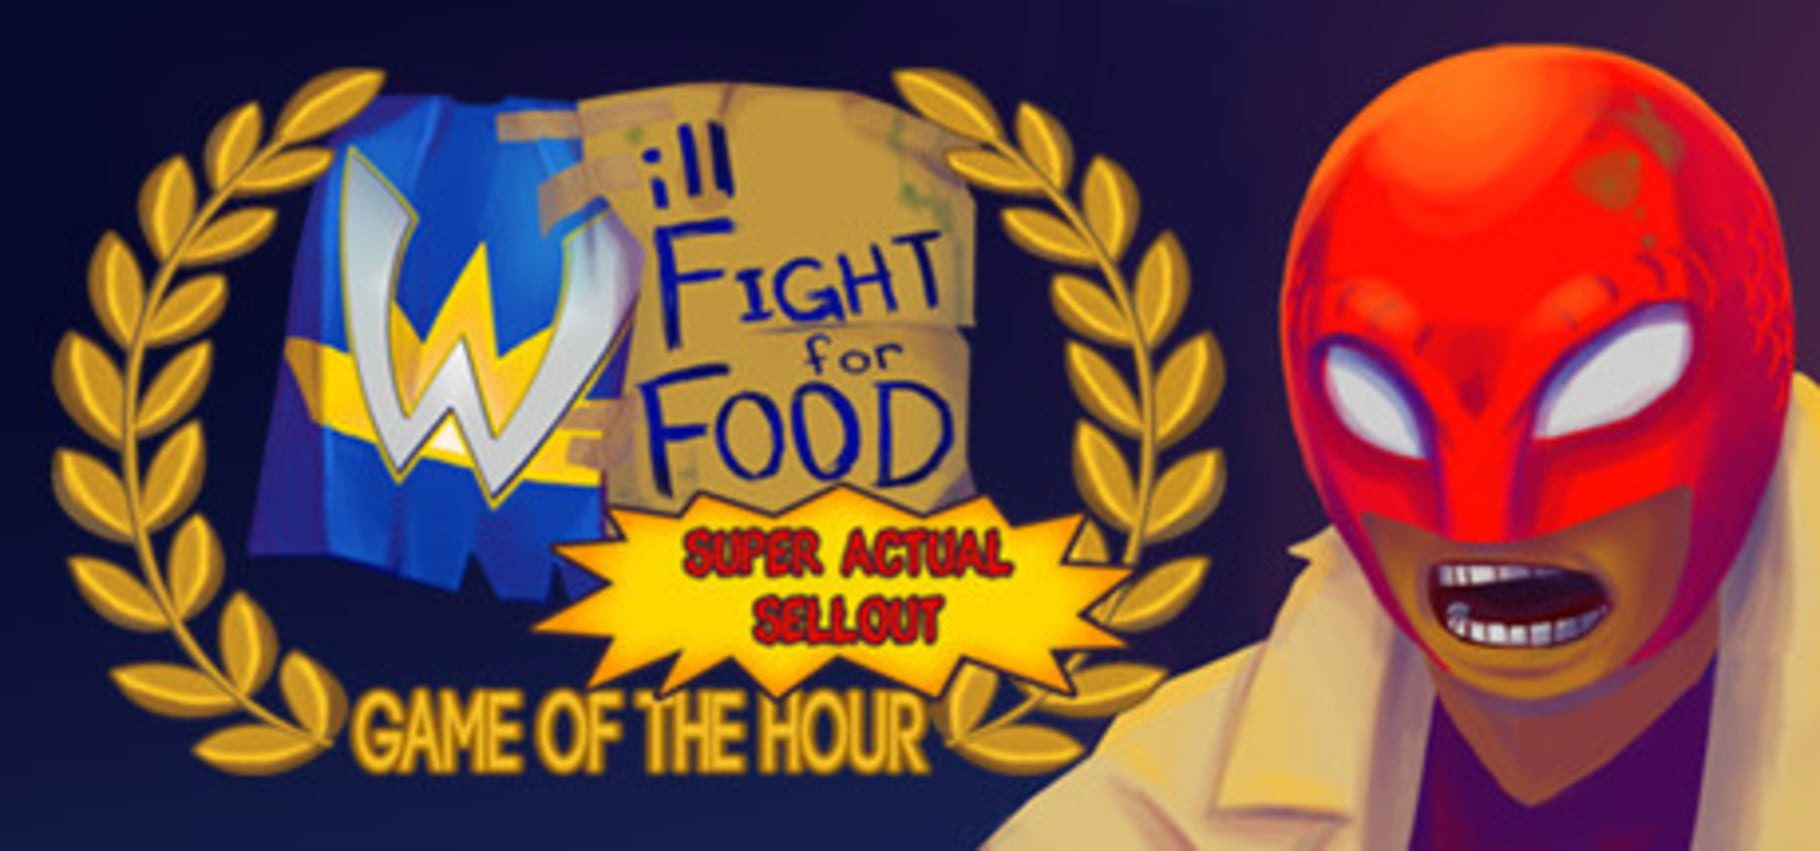 buy Will Fight for Food: Super Actual Sellout: Game of the Hour cd key for all platform